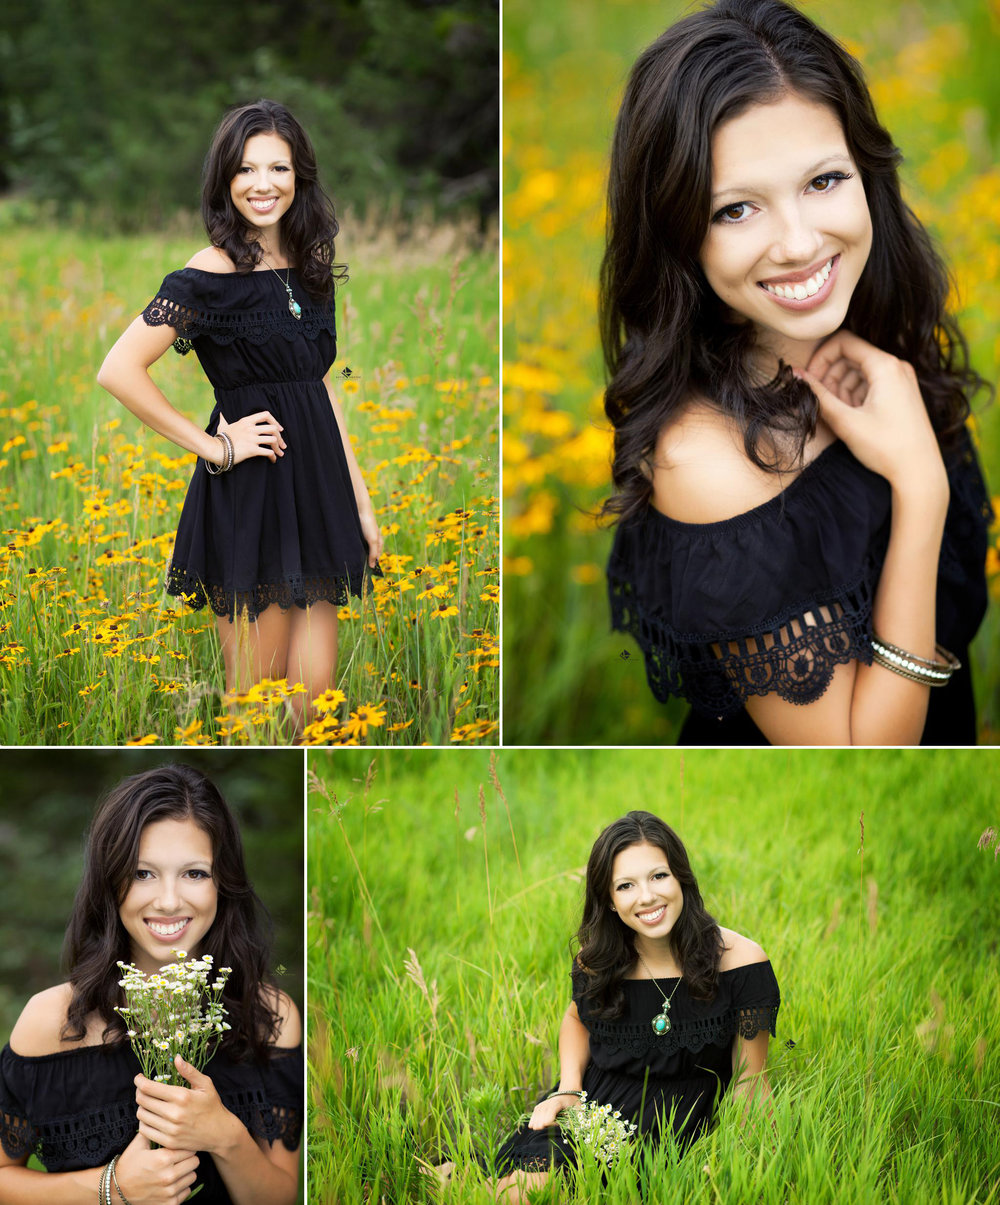 Black Dress Senior by Katie Swatek Photography | Flower Field Senior by Katie Swatek Photography